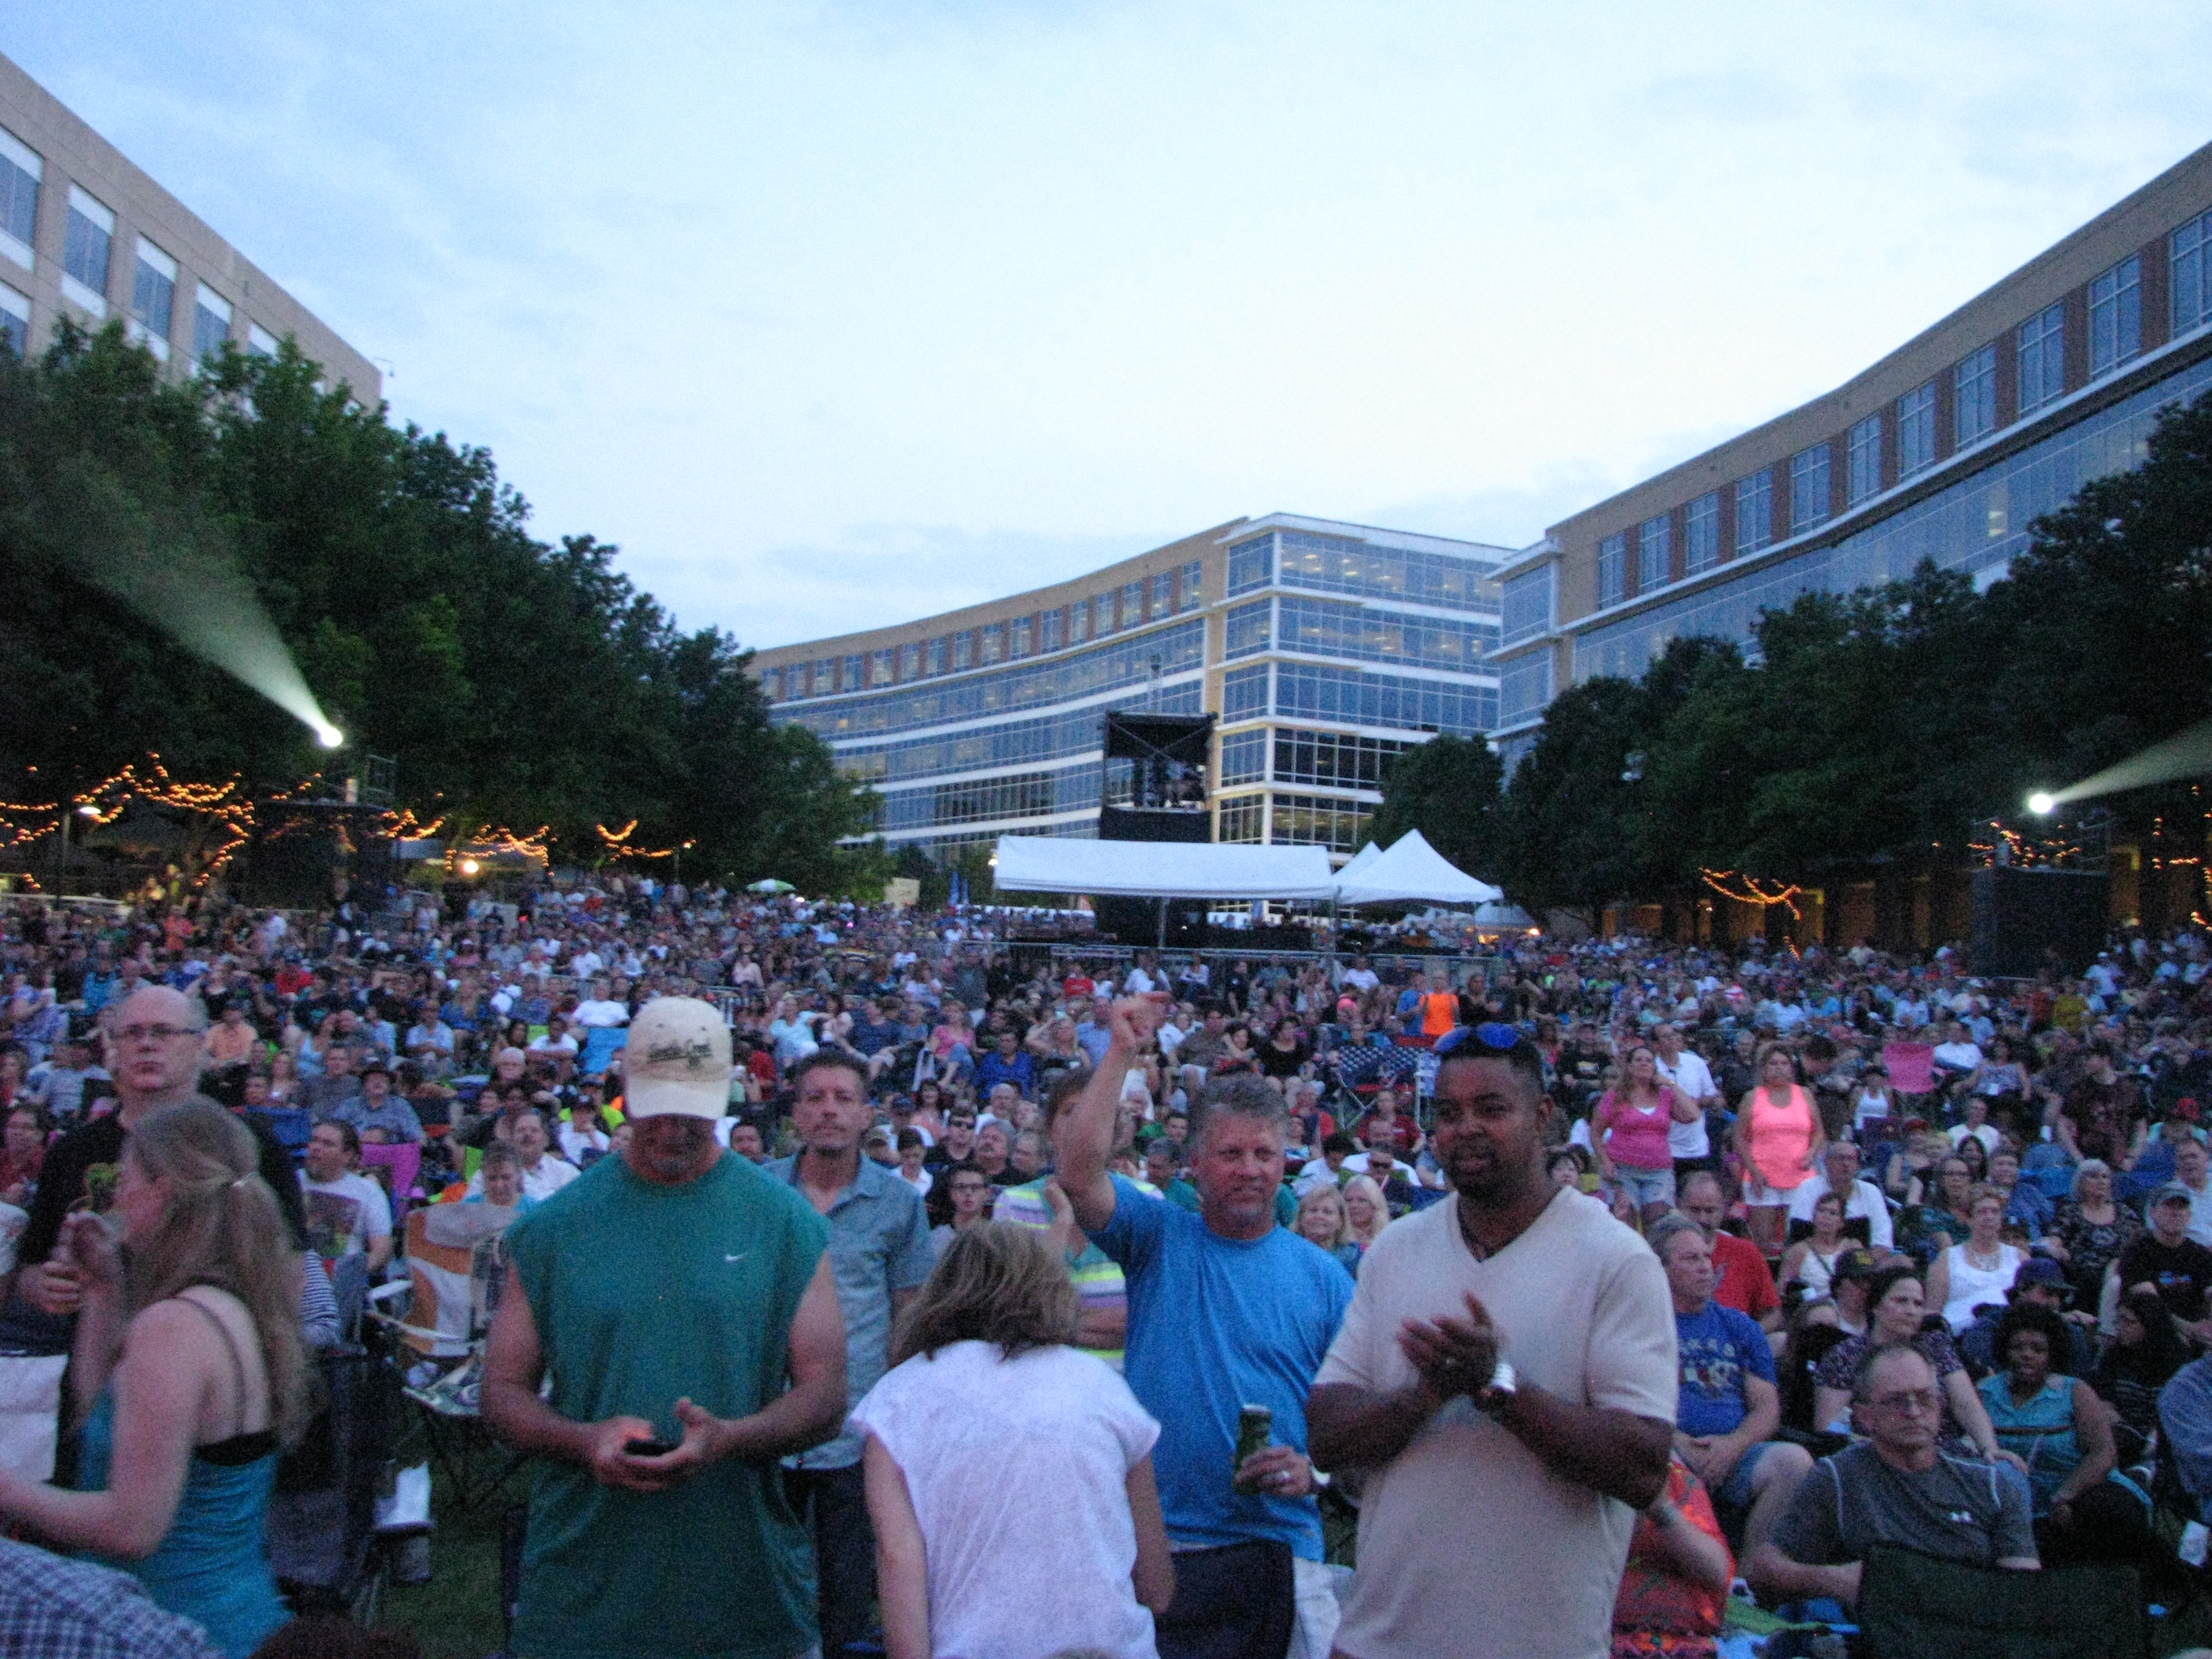 Crowd for .38 special